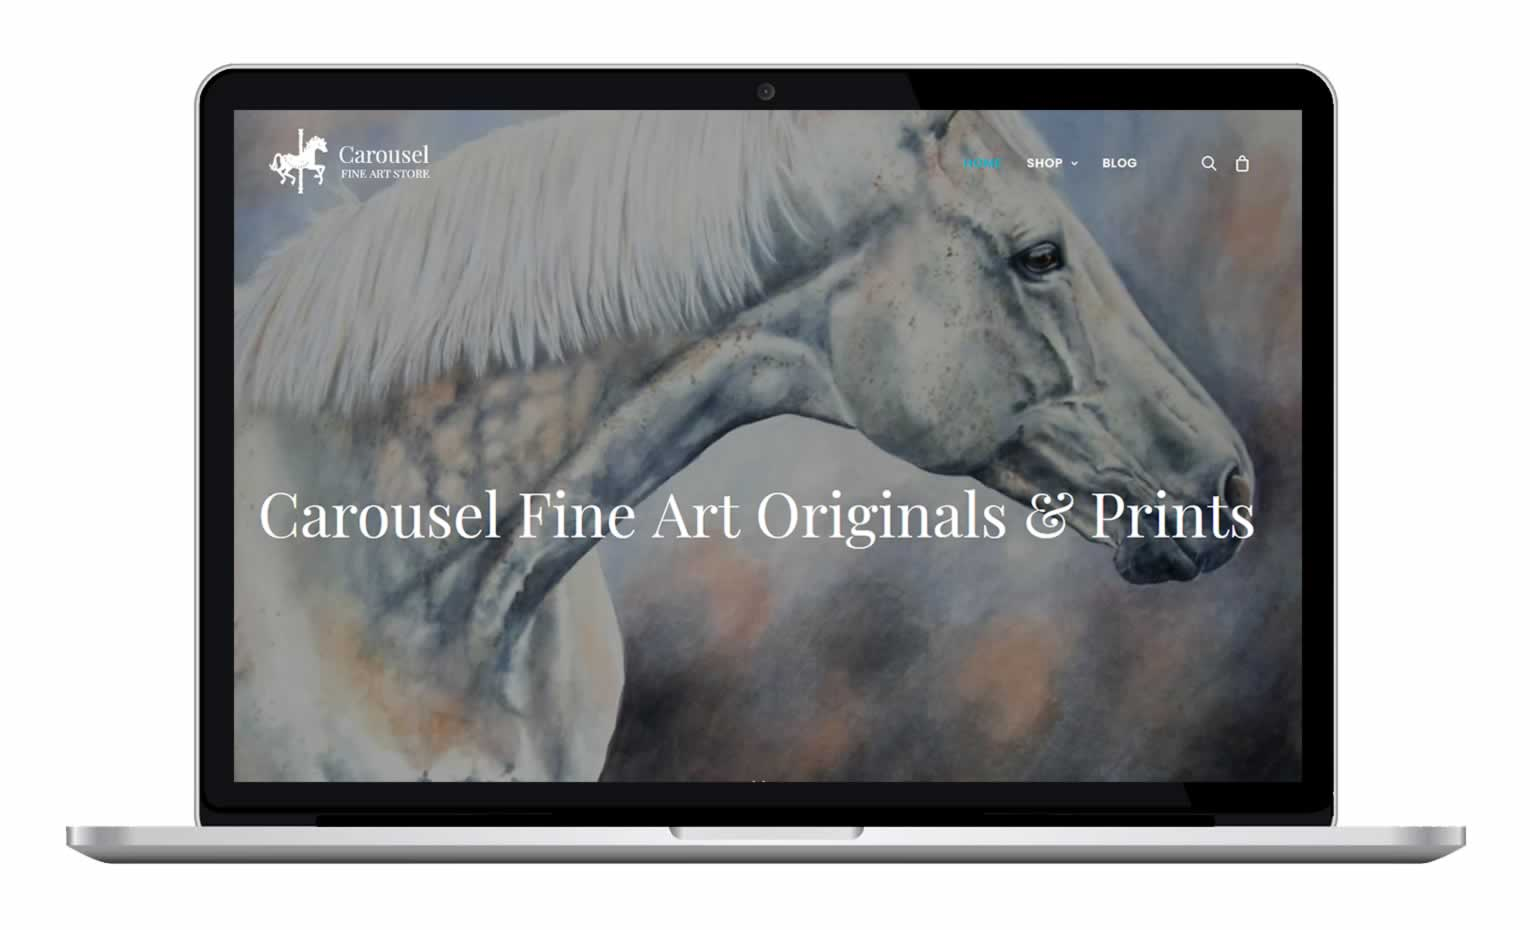 Carousel Fine Art - Equestrian and Equine Art Ecommerce Website